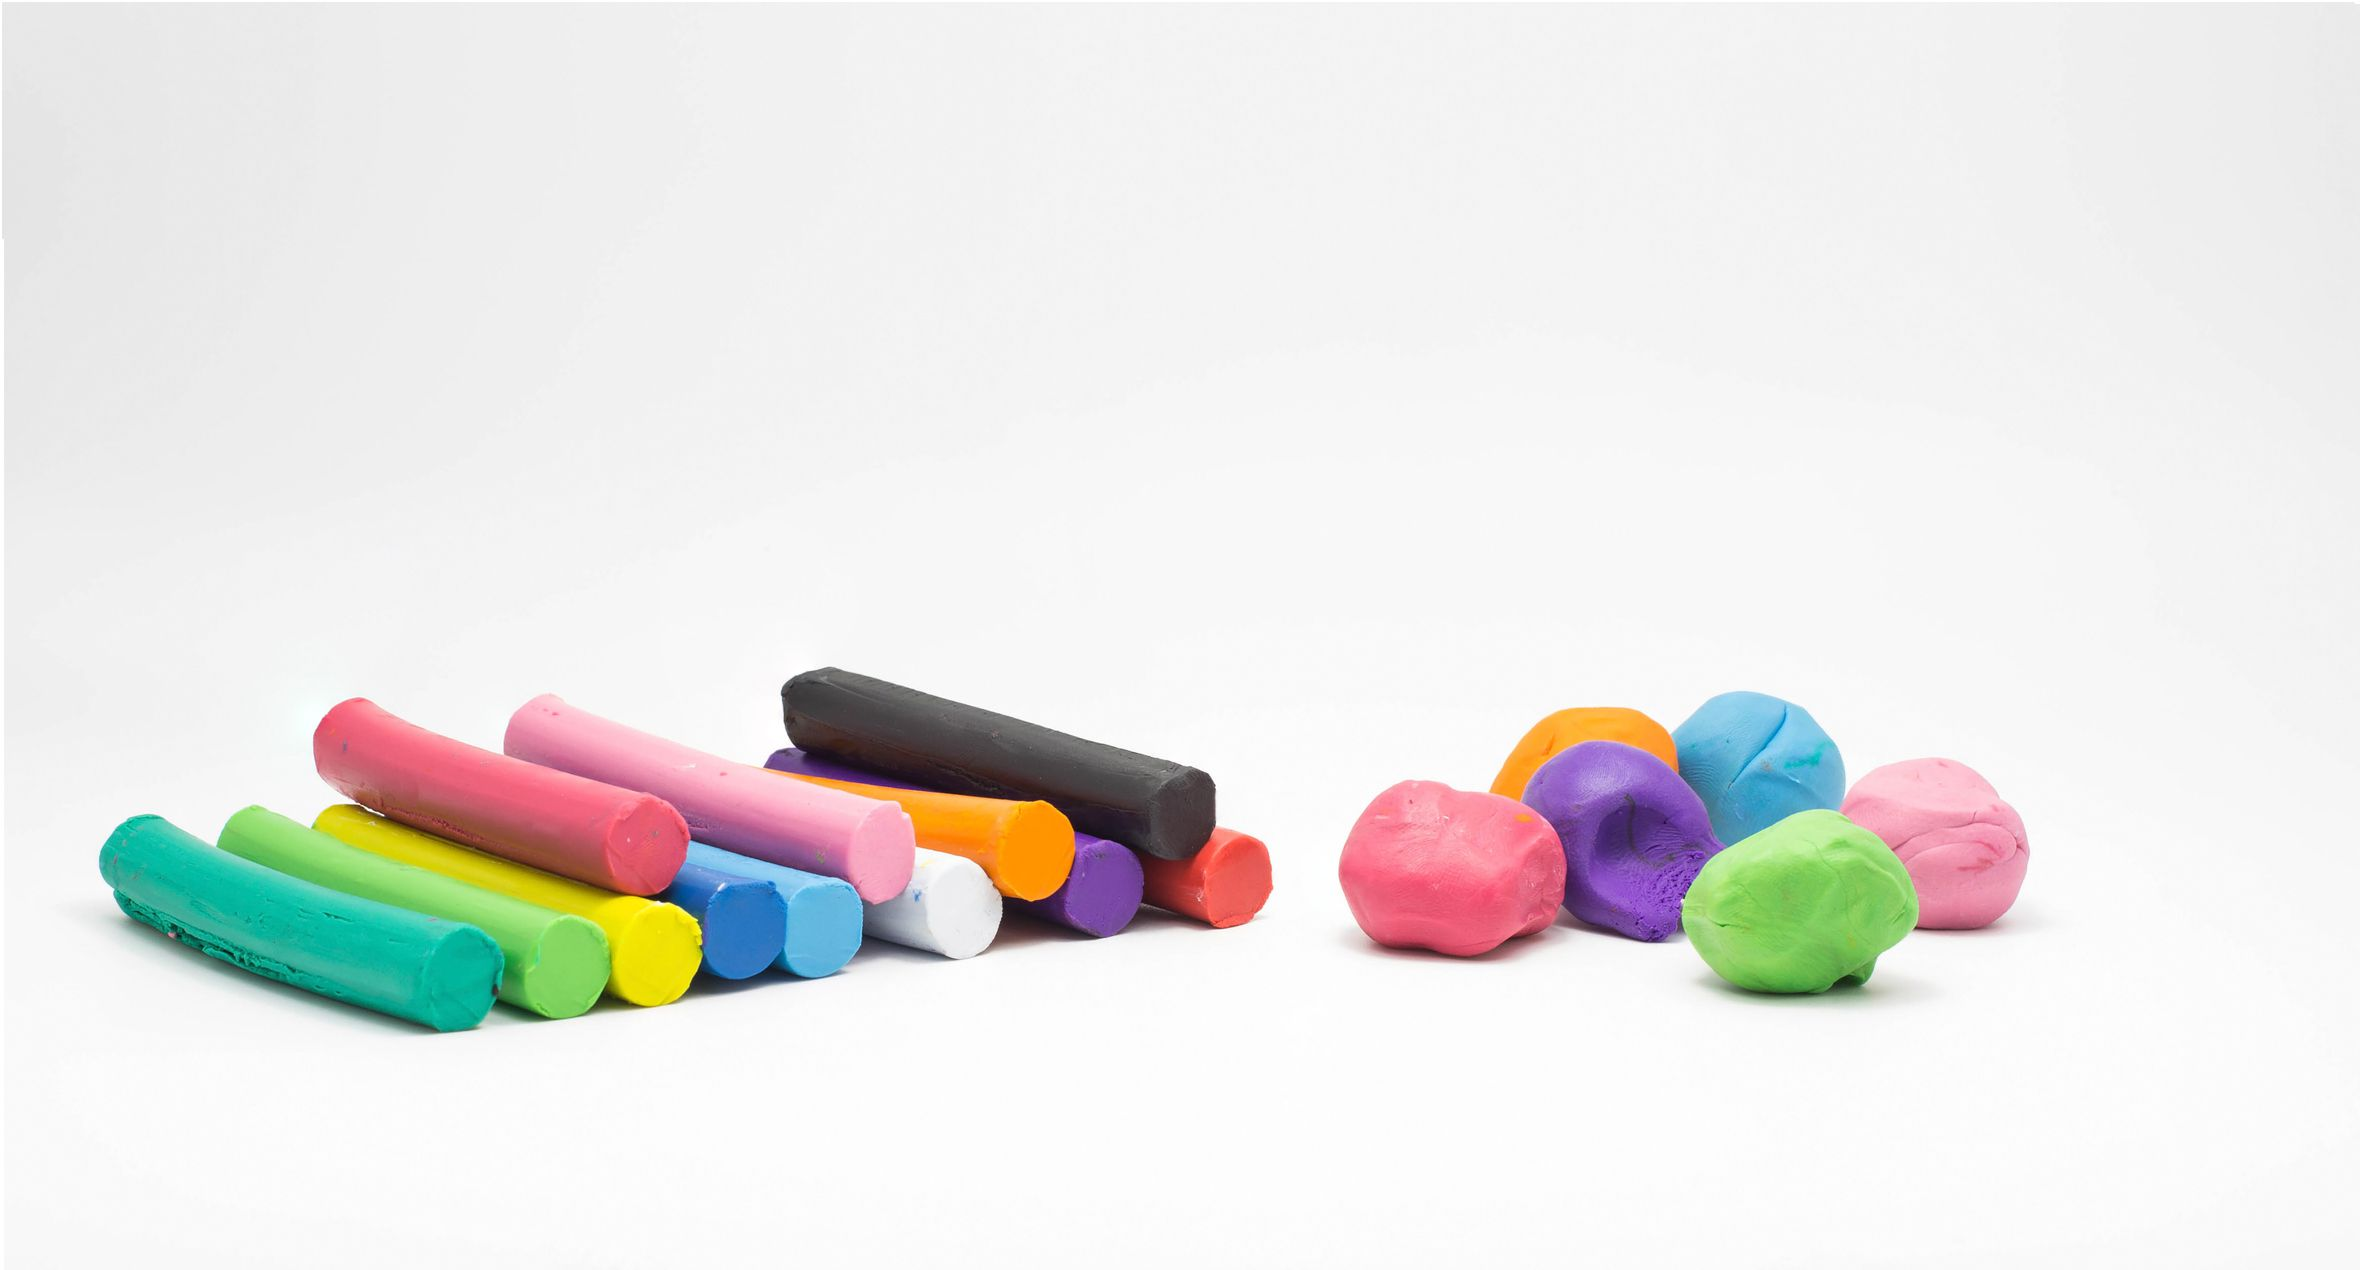 different colored putty and play-doh